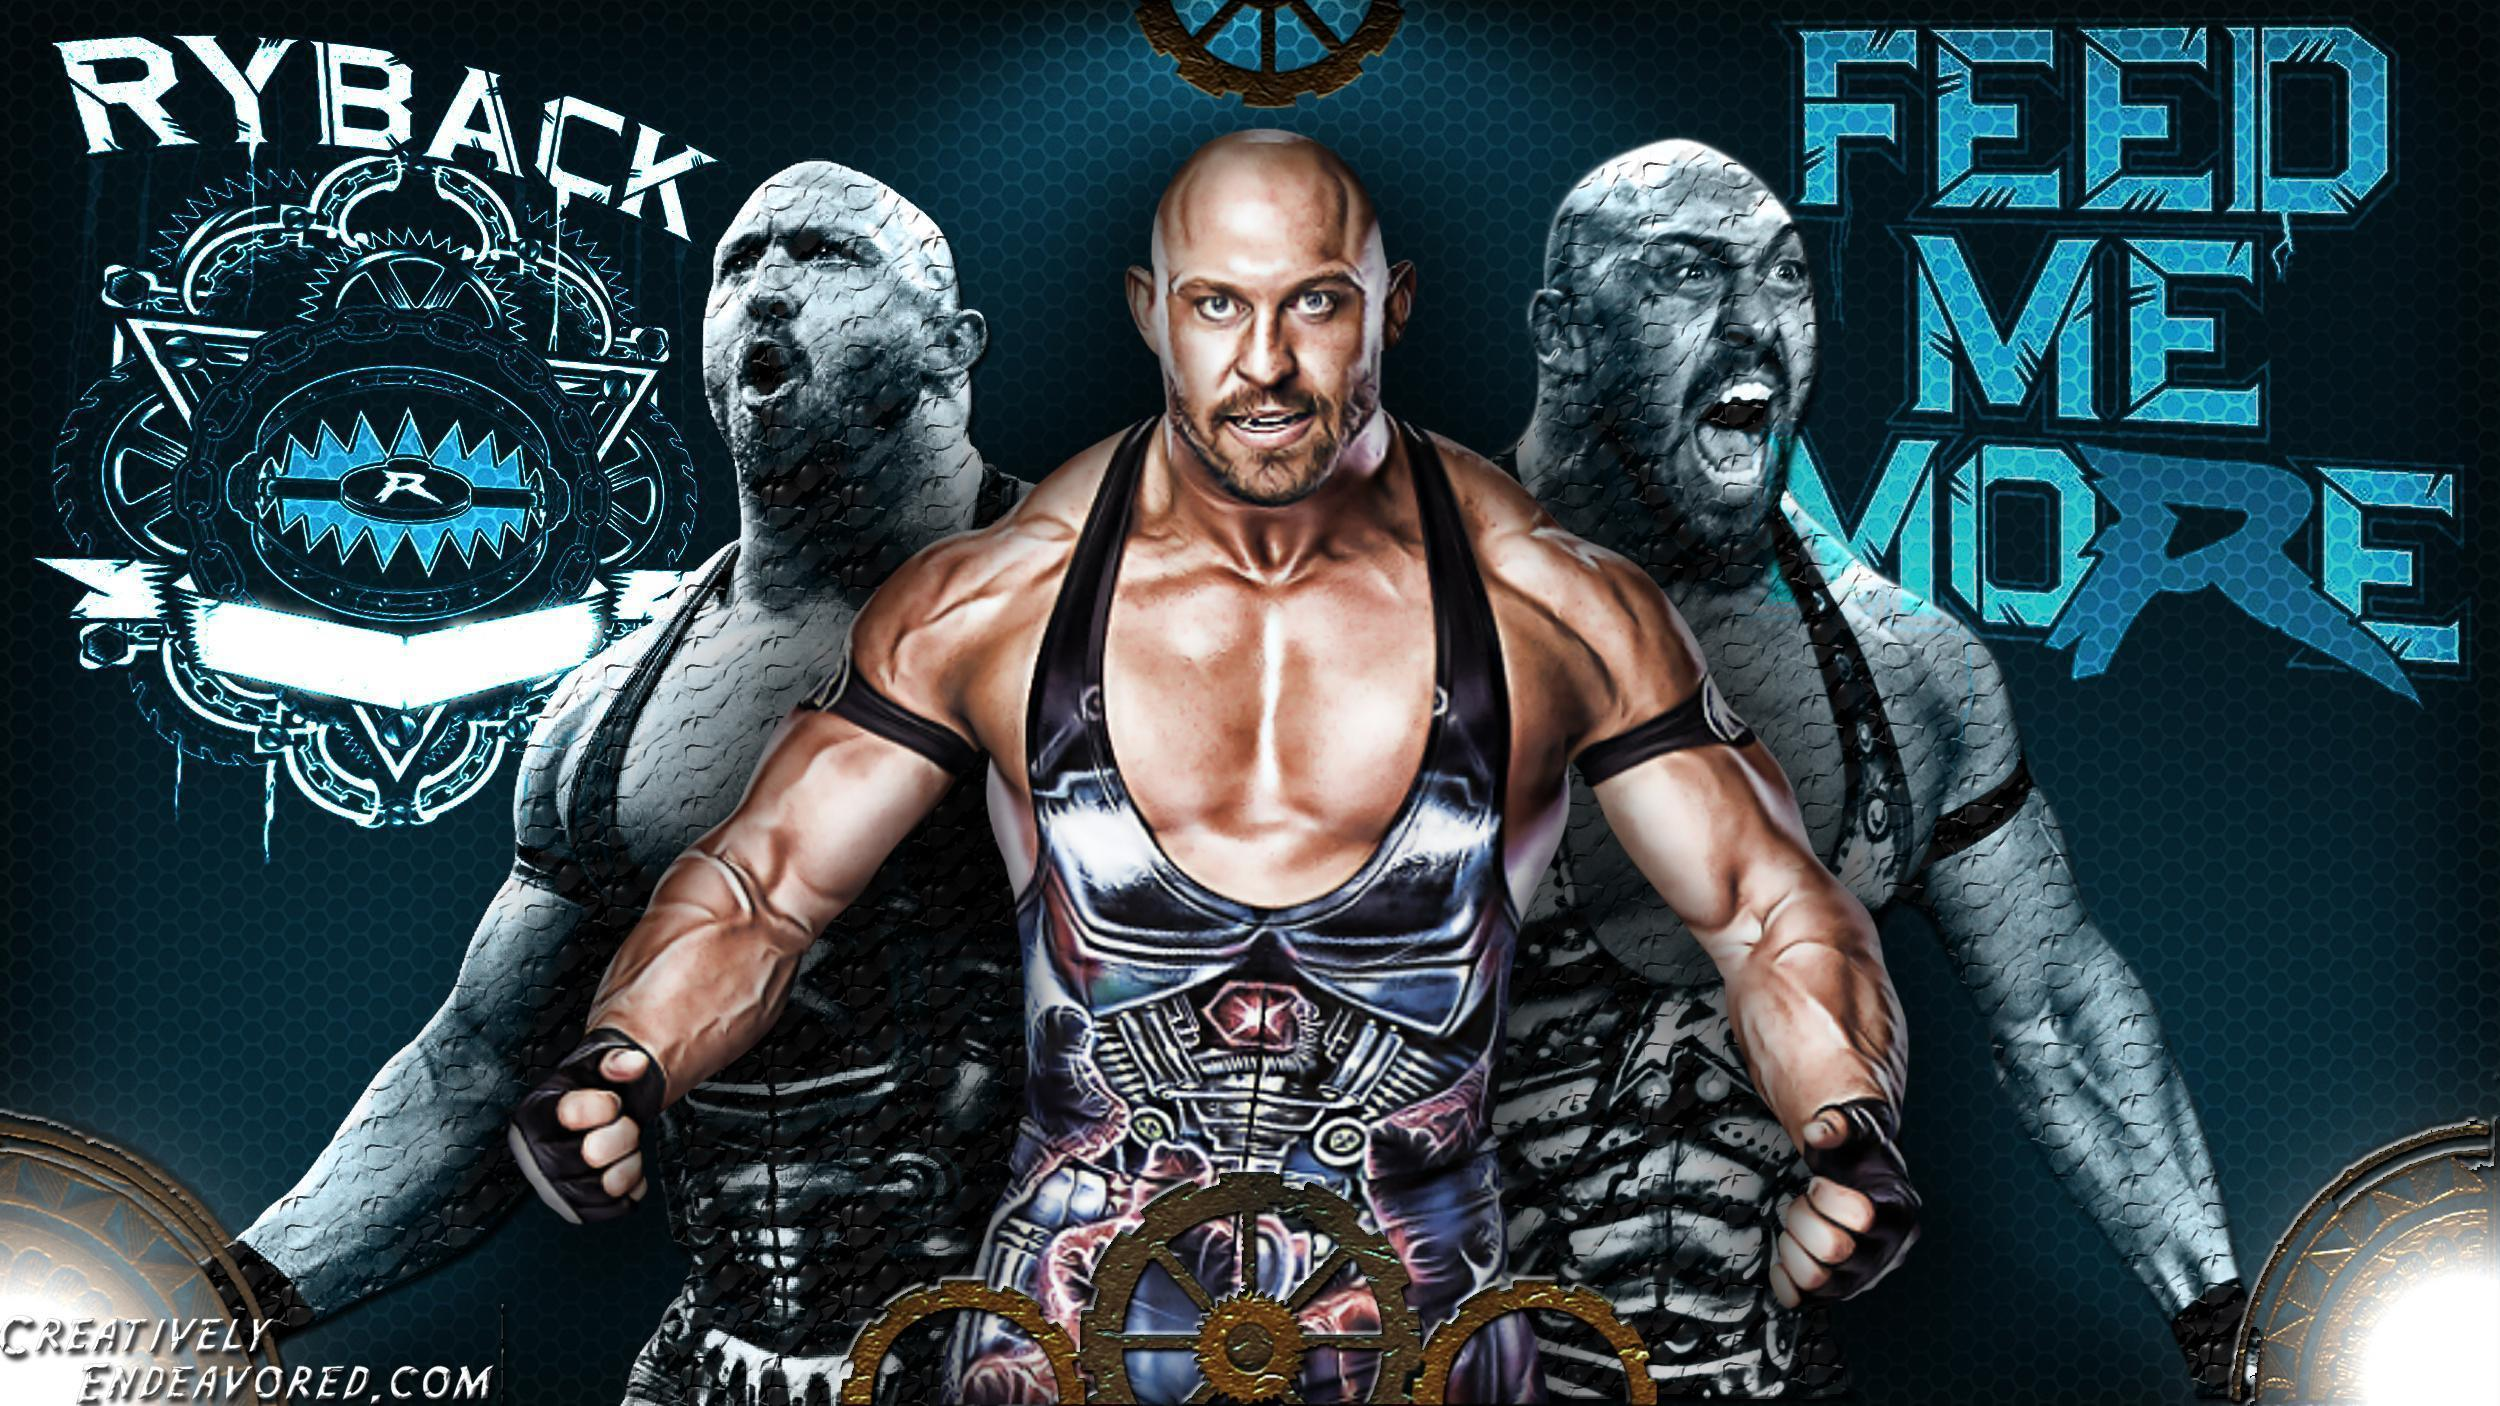 Ryback WWE Superstar 2013 HD Wallpaper For Desktop